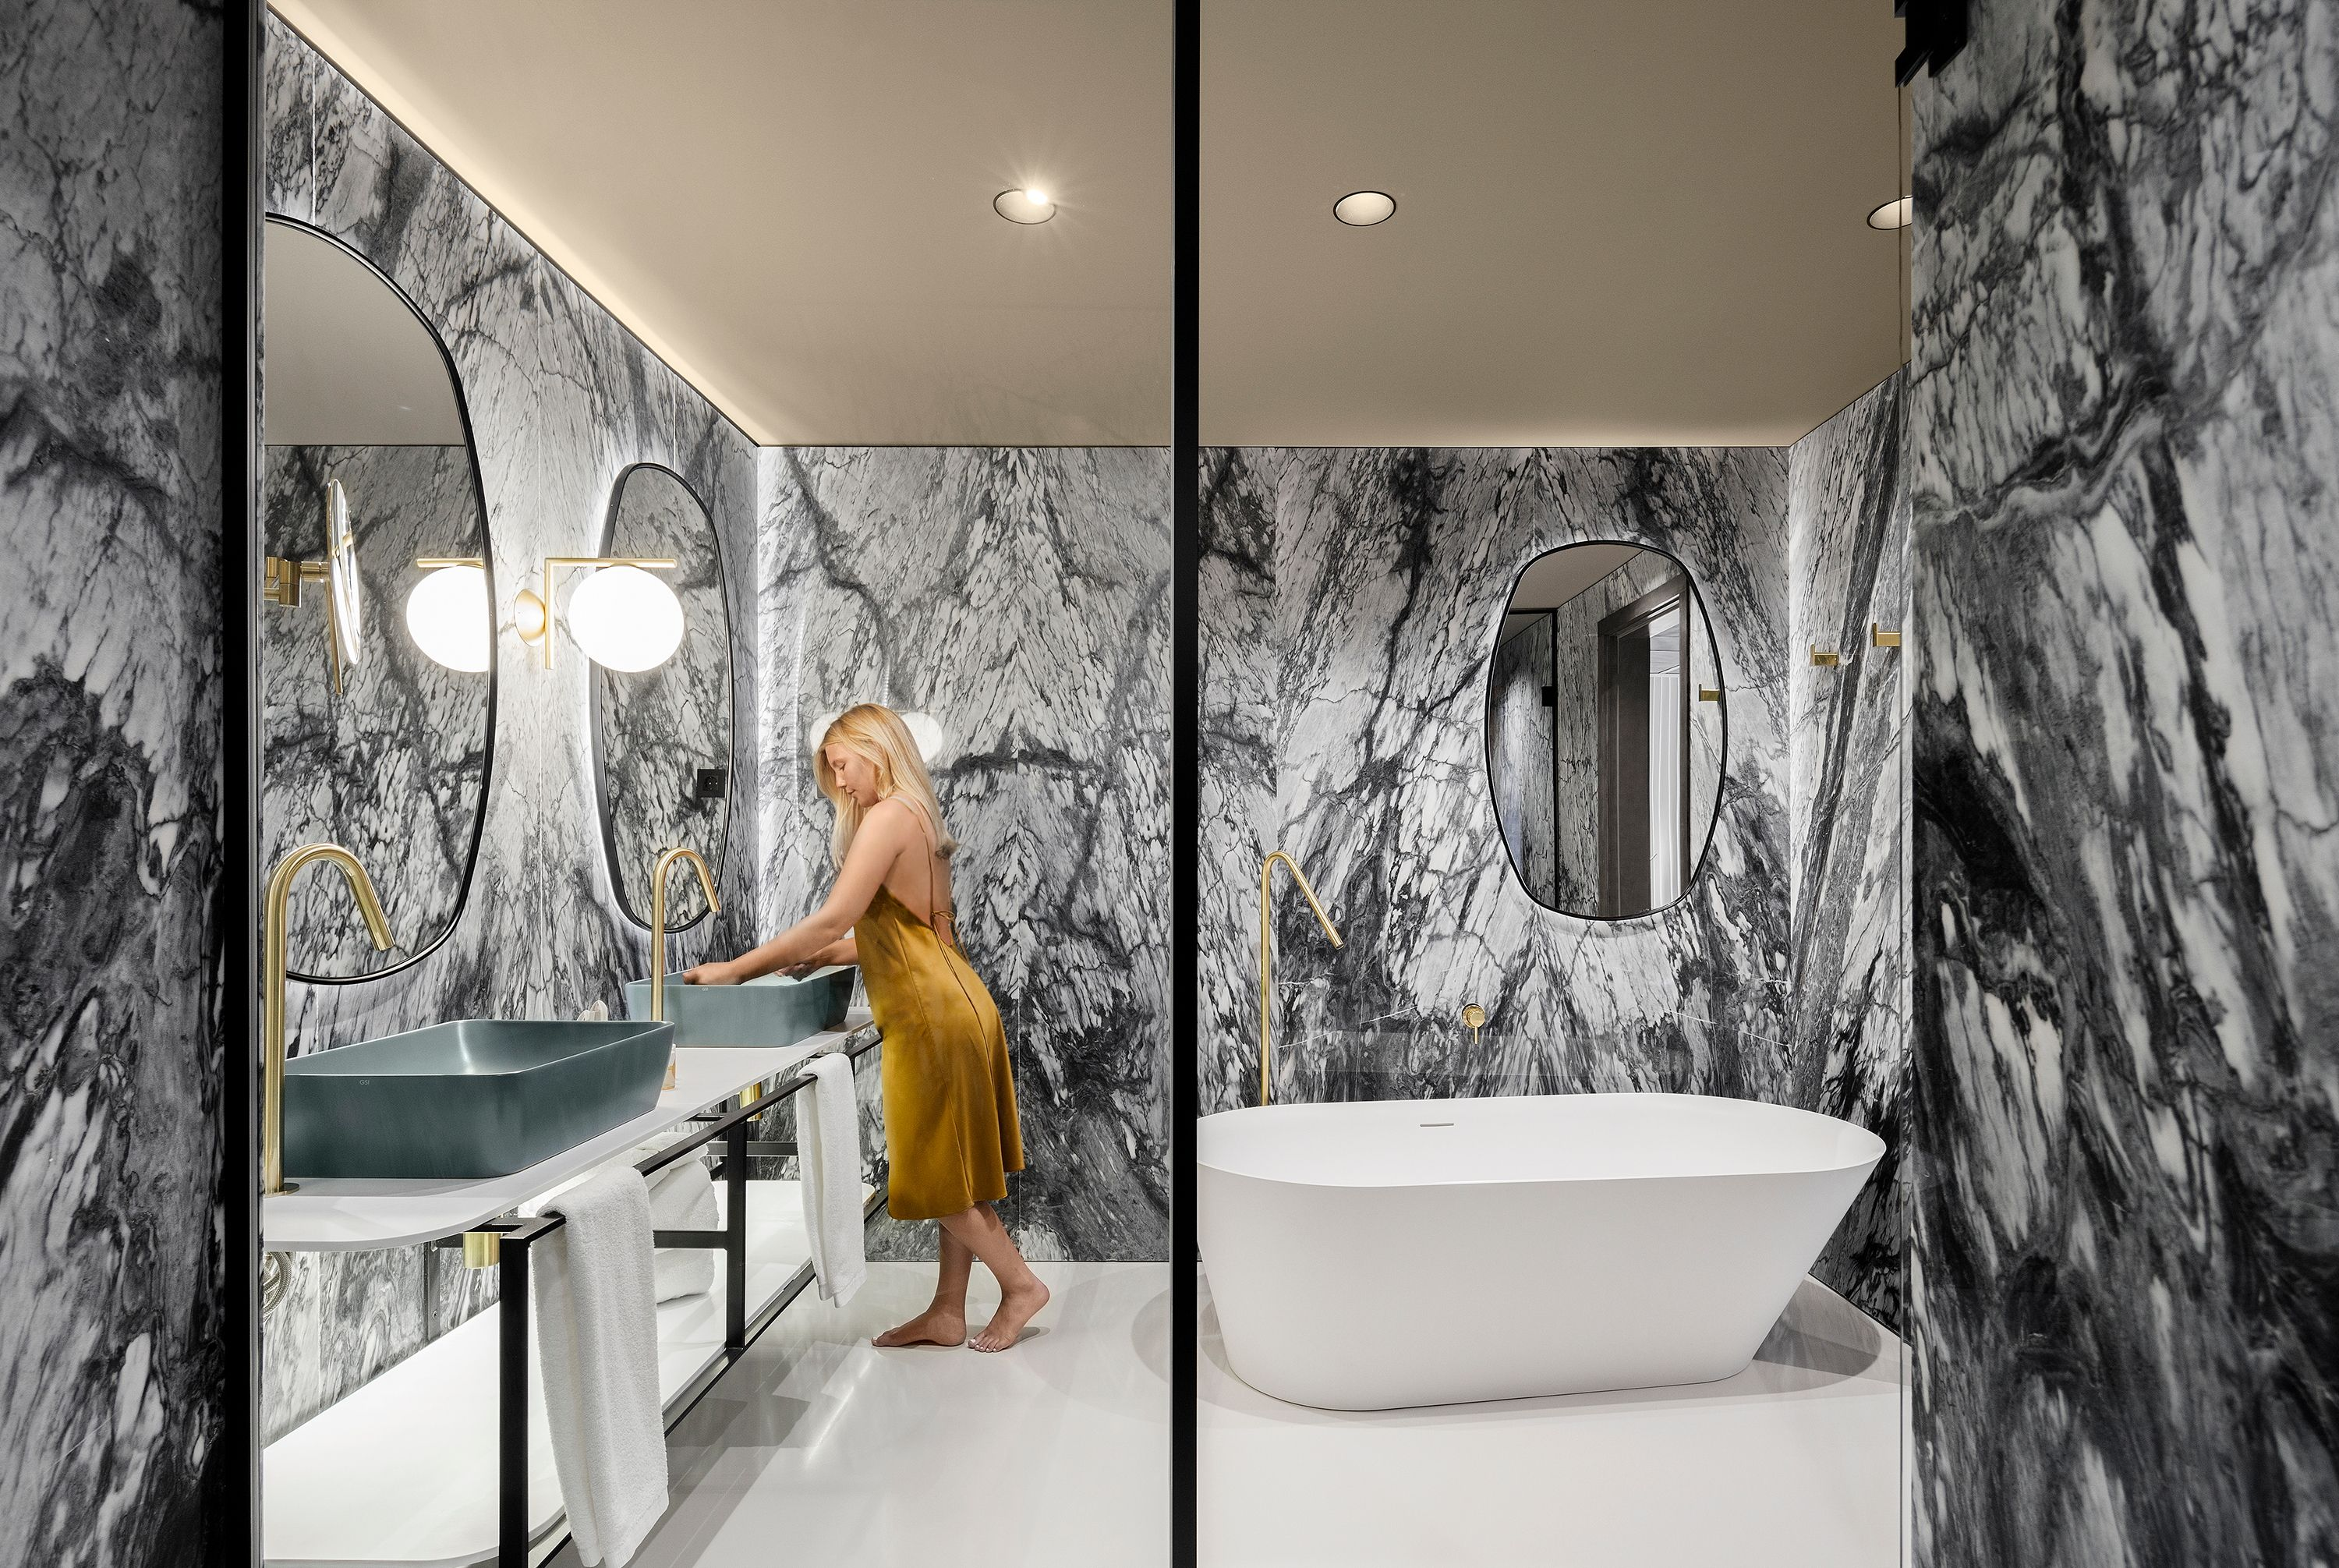 Pin By Jose Meng On Residence Royal Garden Hotel Remodel